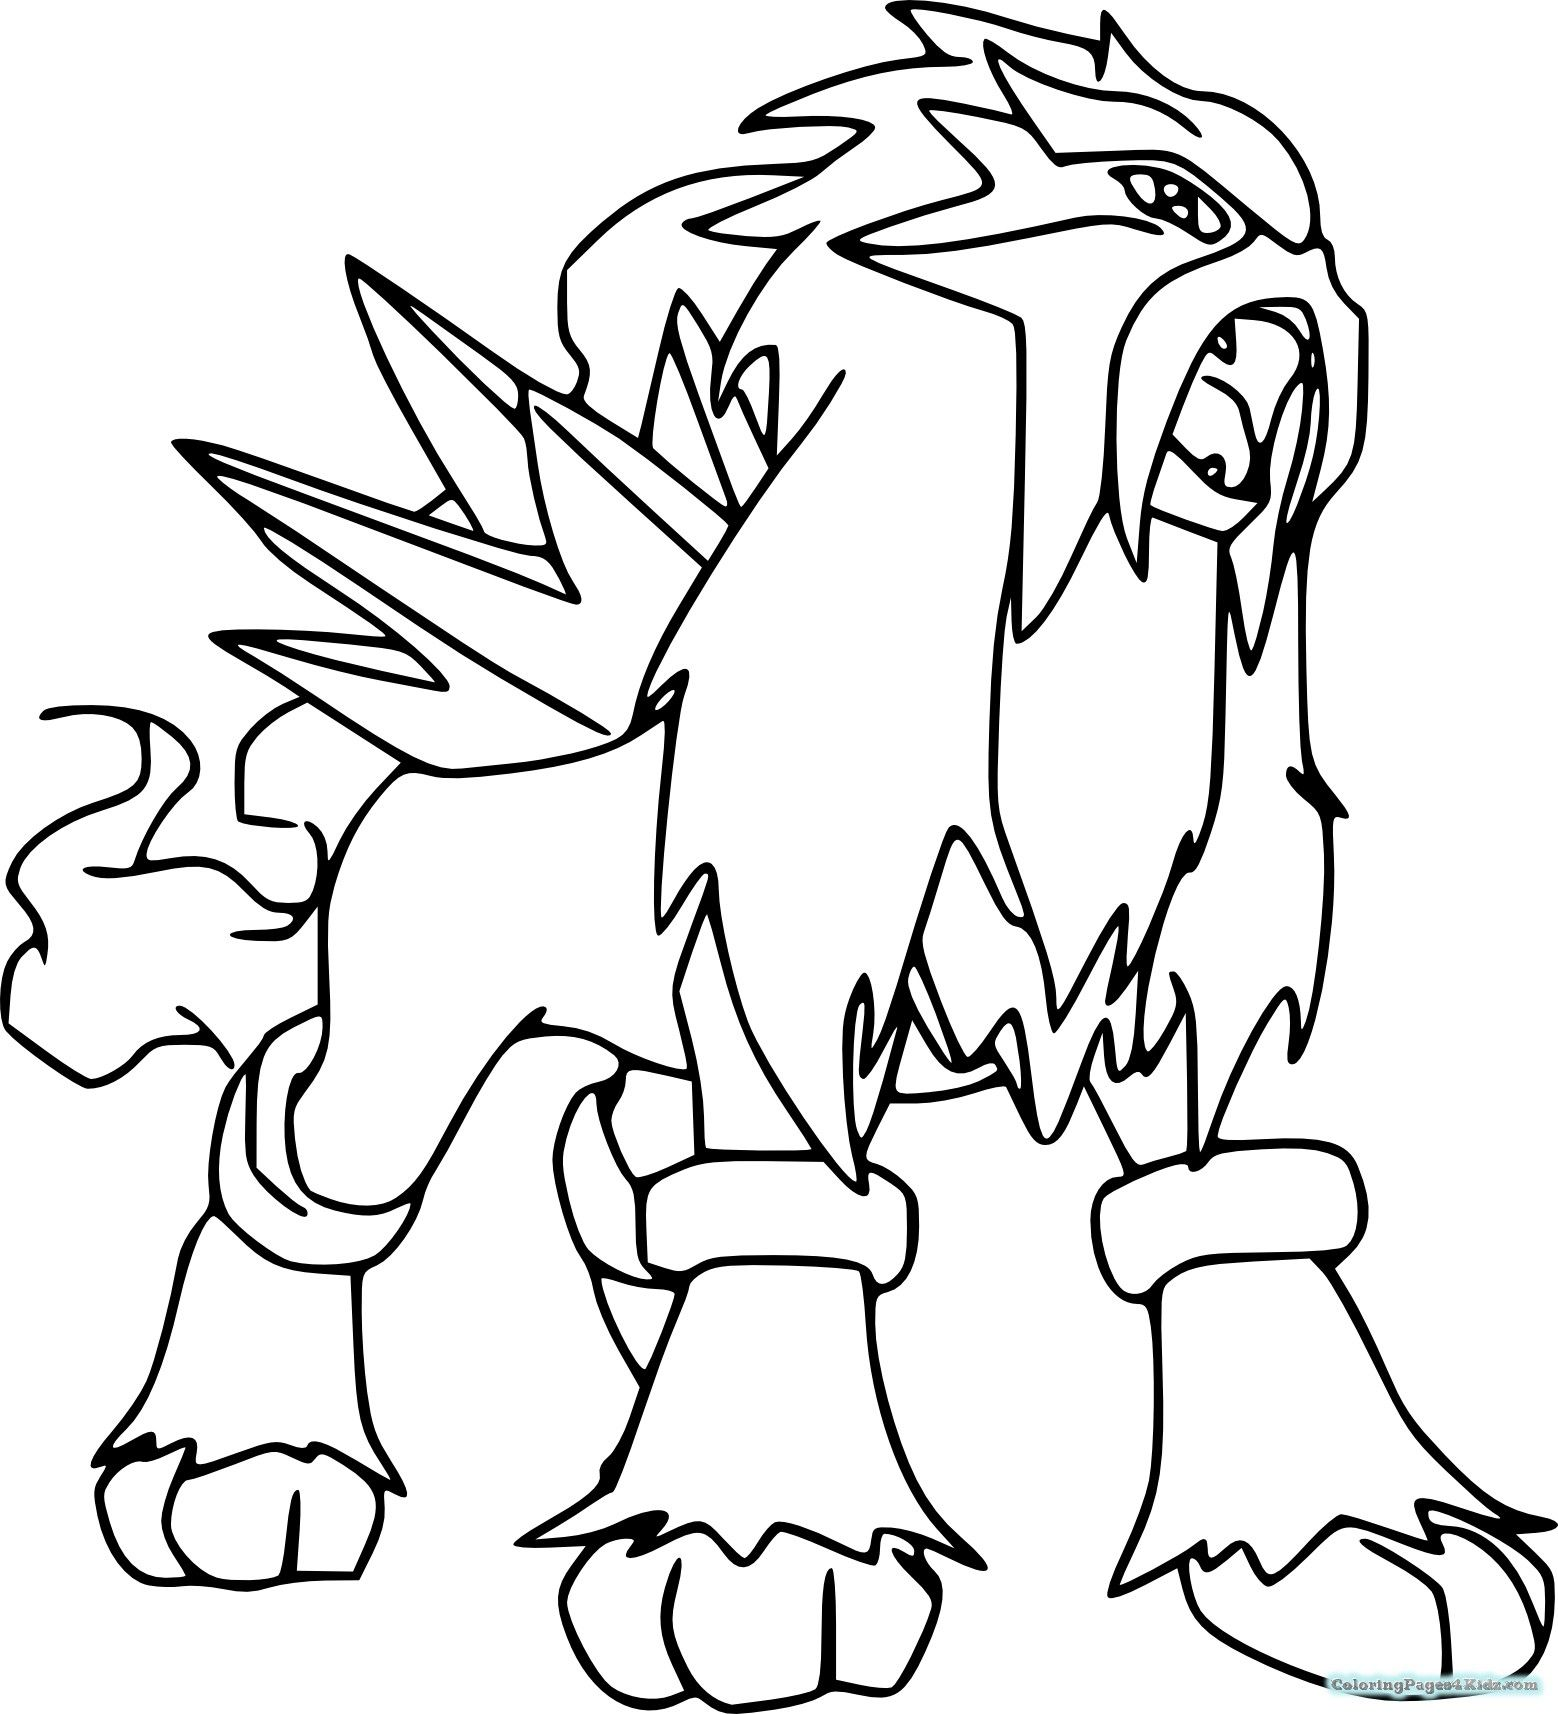 Legendary Pokemon Coloring Pages Free Http Www